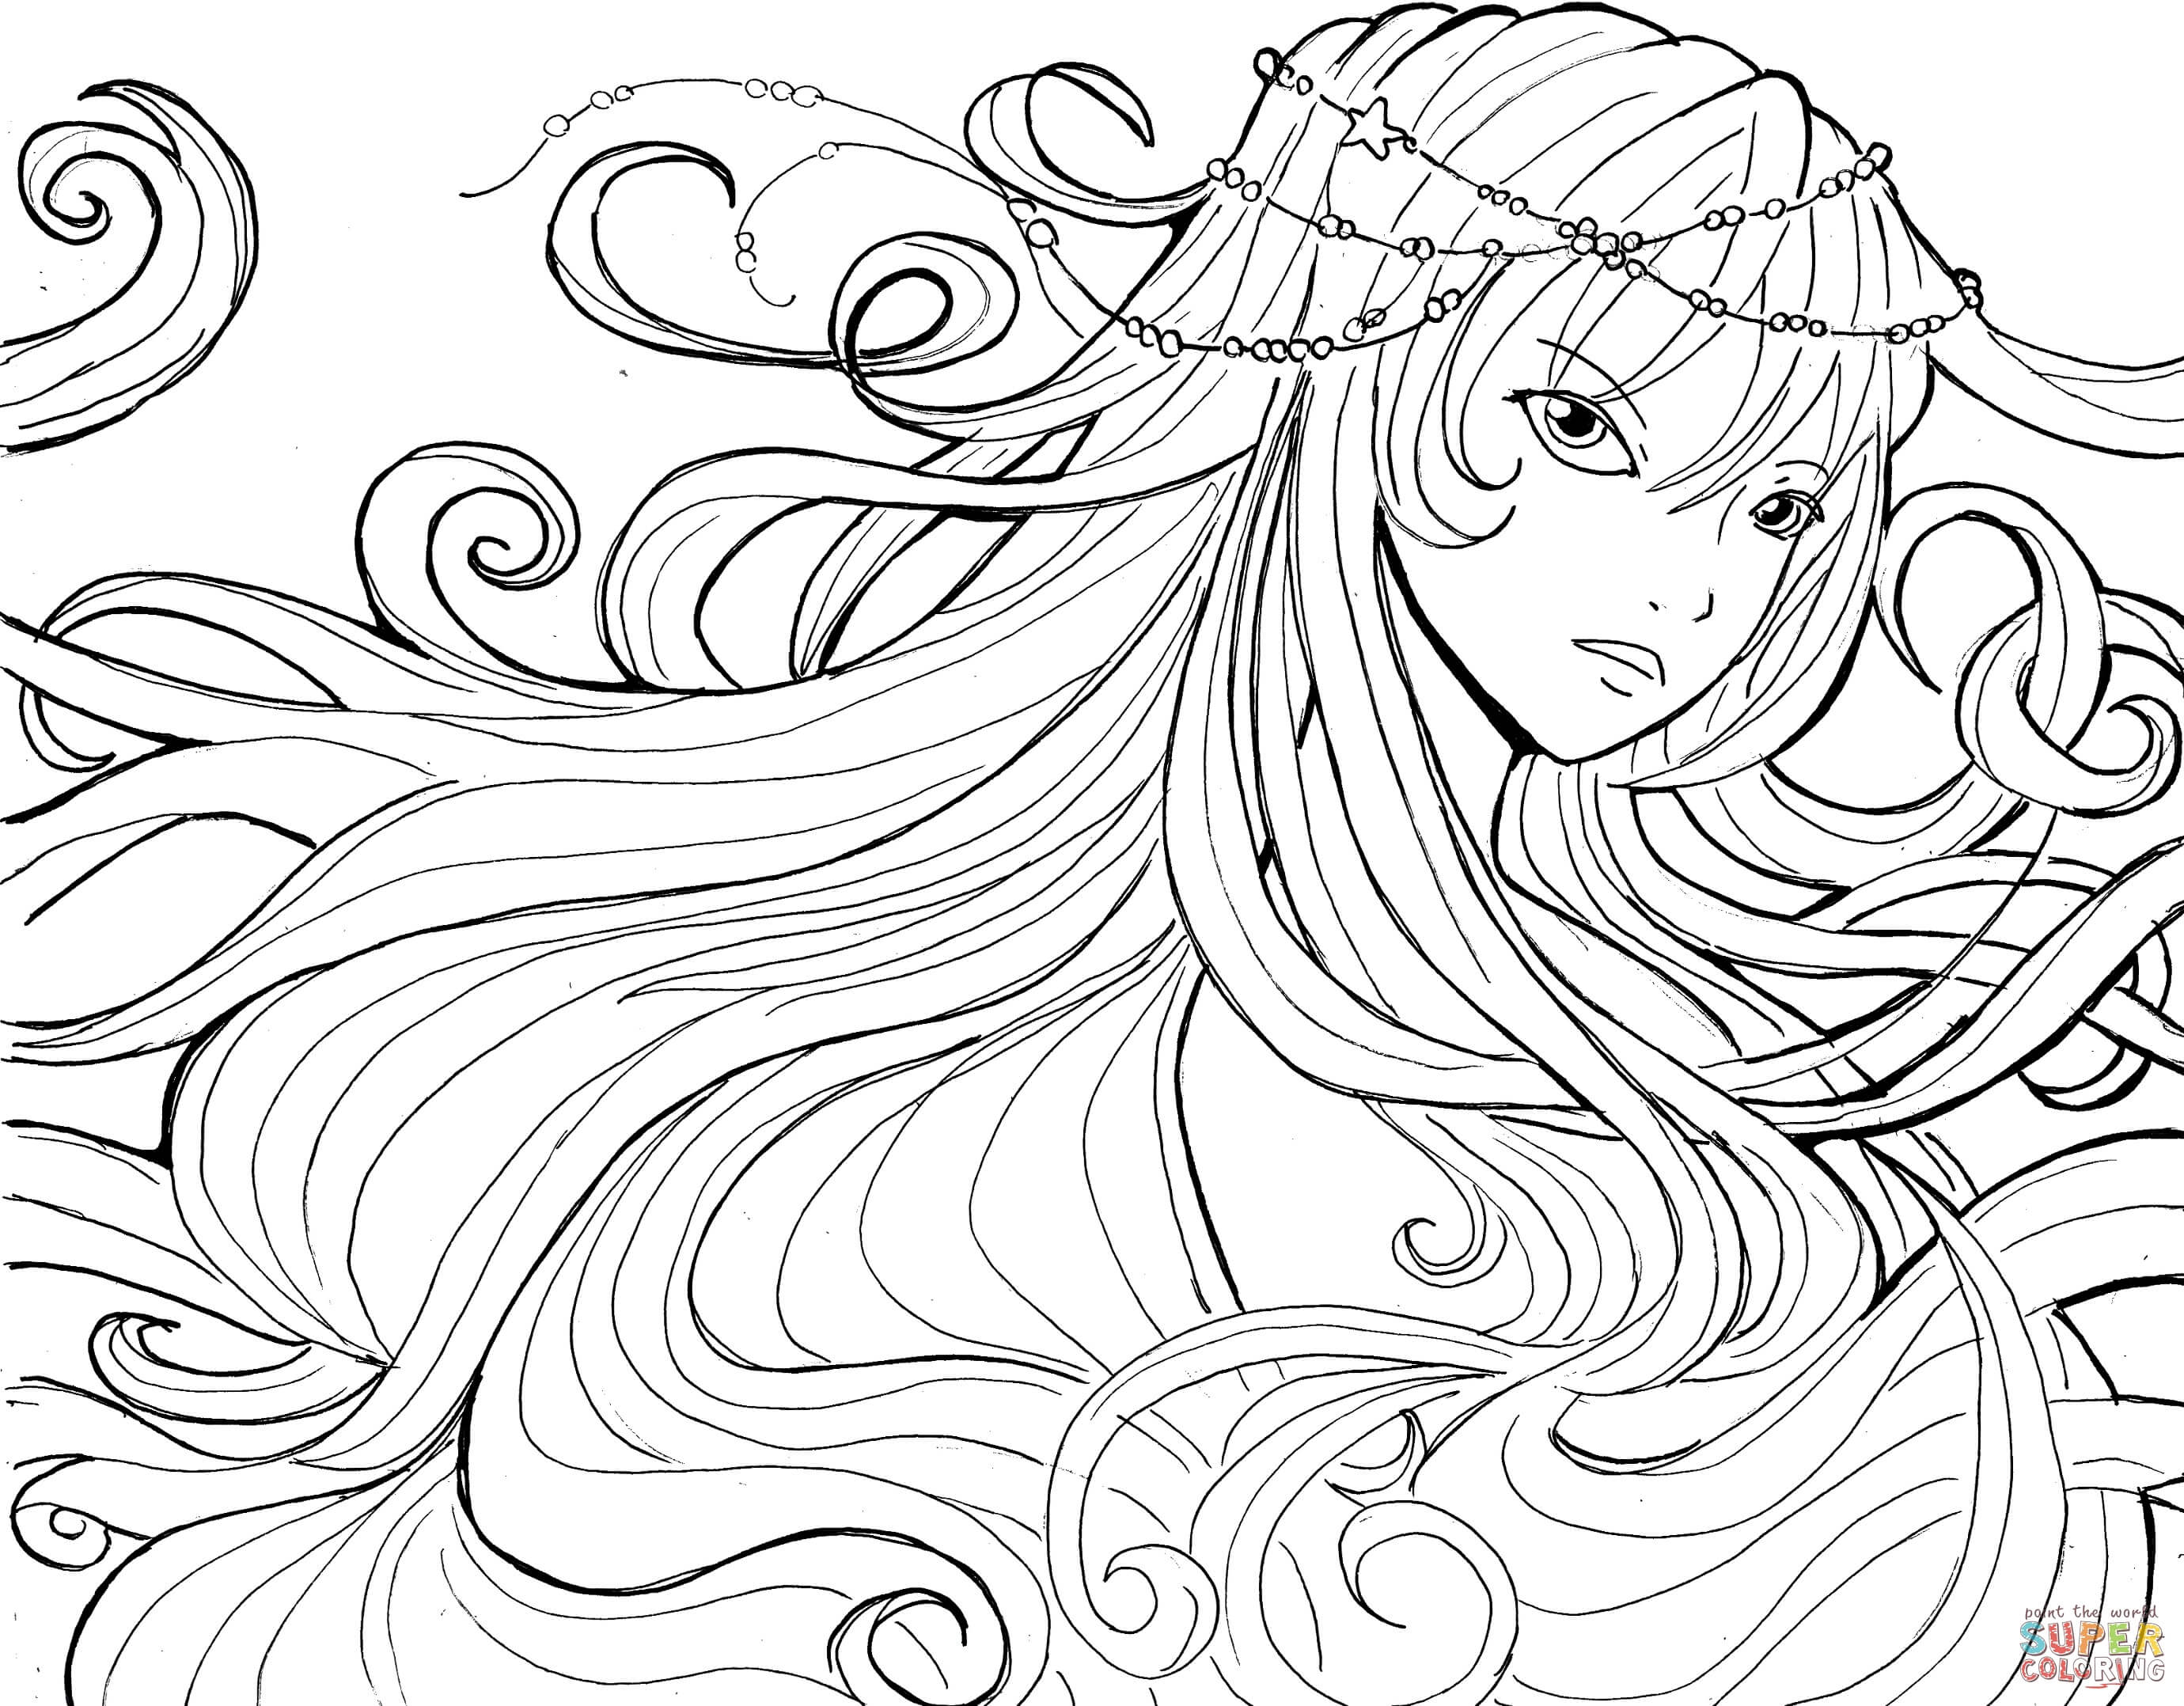 Anime Girls Coloring Pages Download – Free Coloring Sheets